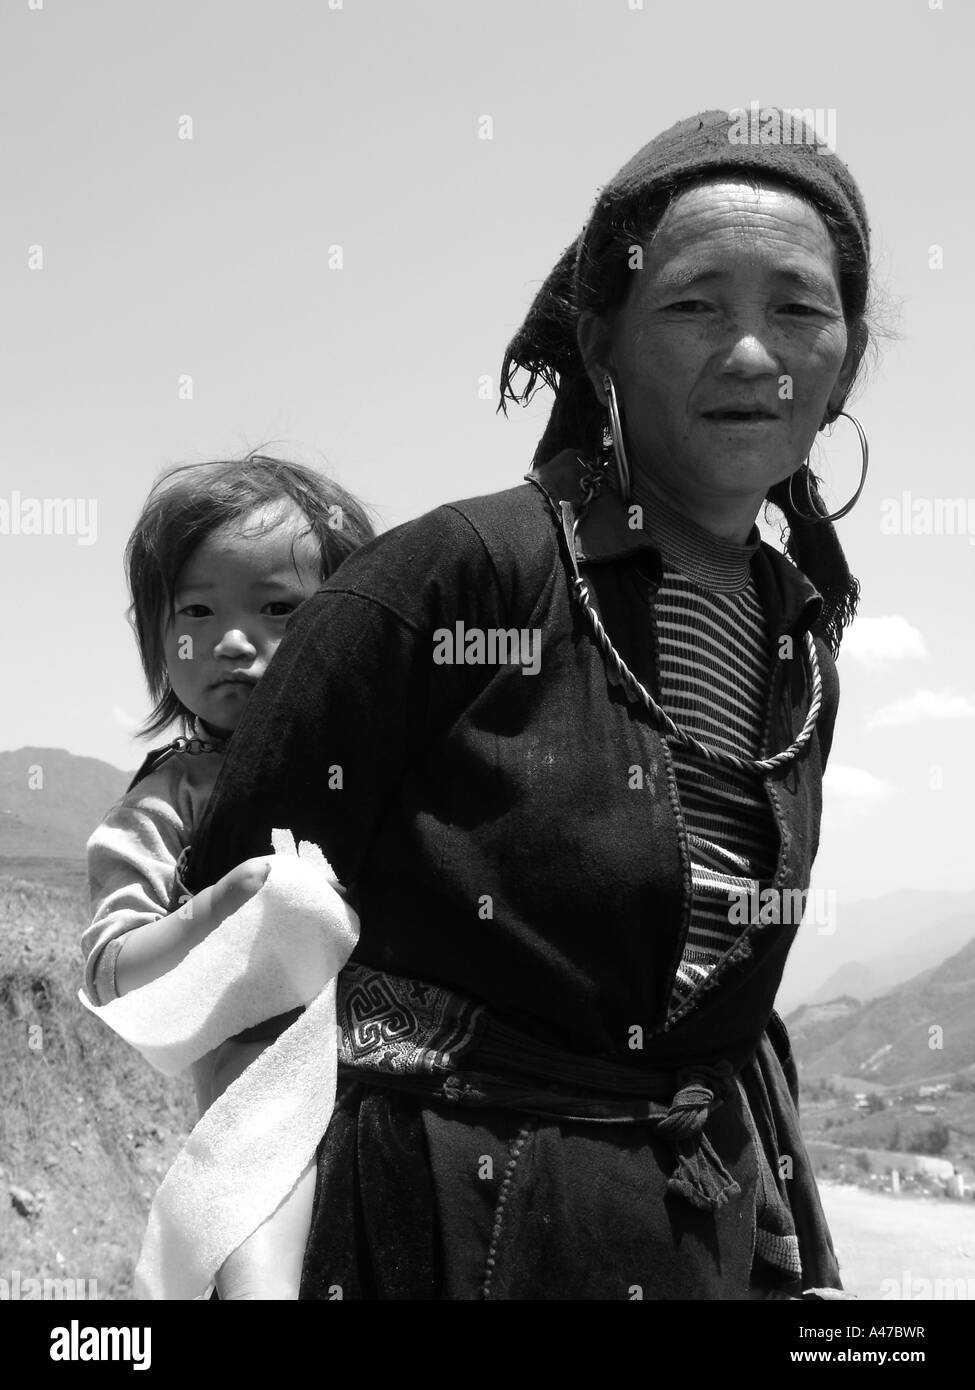 Mother and daughter of a small village near Sapa in northern Vietnam. - Stock Image